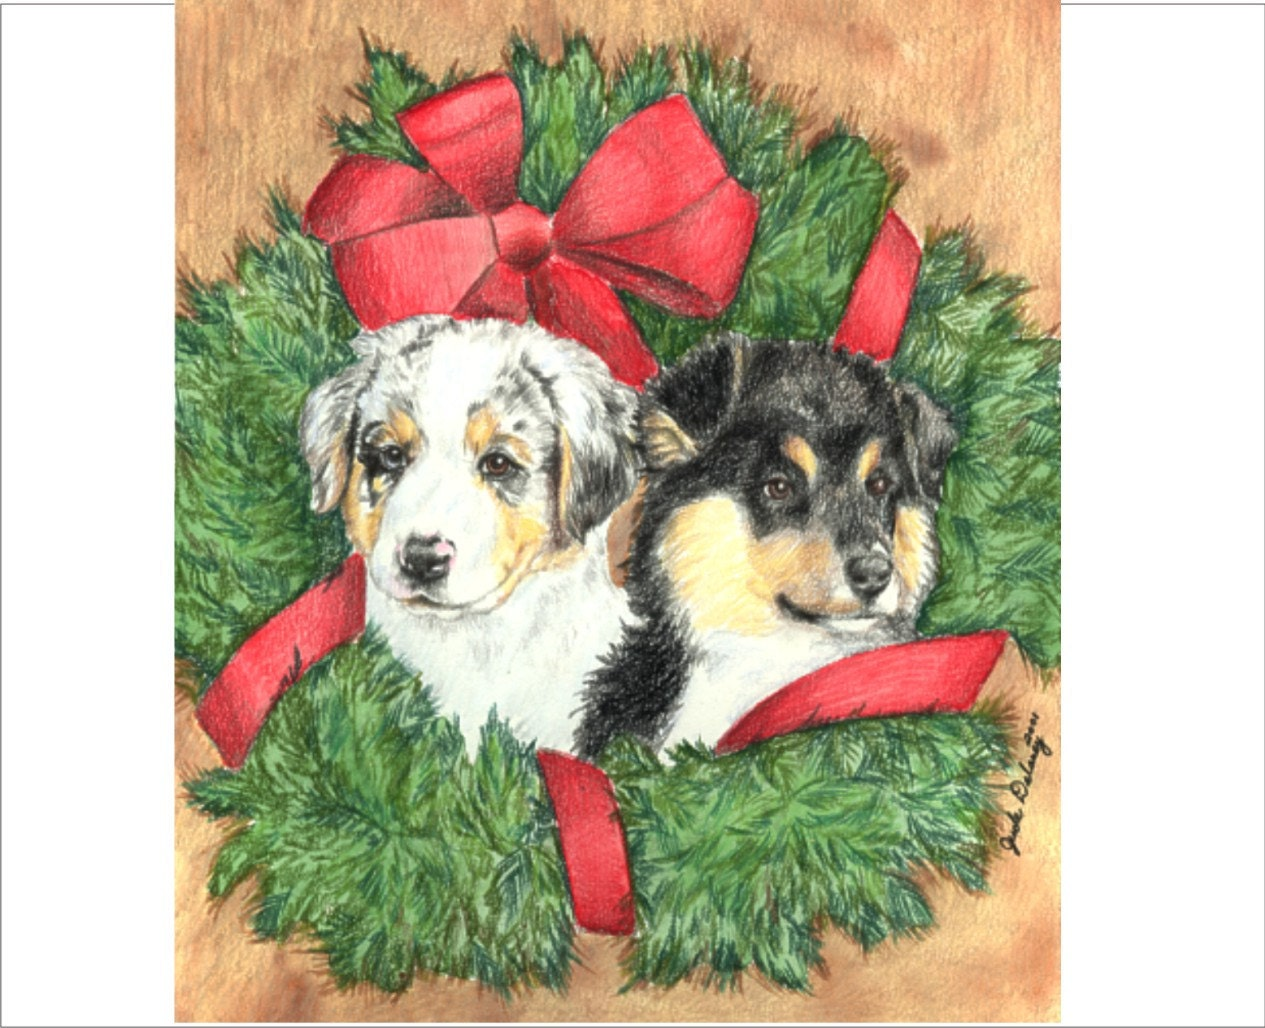 Australian Shepherd Puppy Christmas Cards Merle and Tri | Etsy